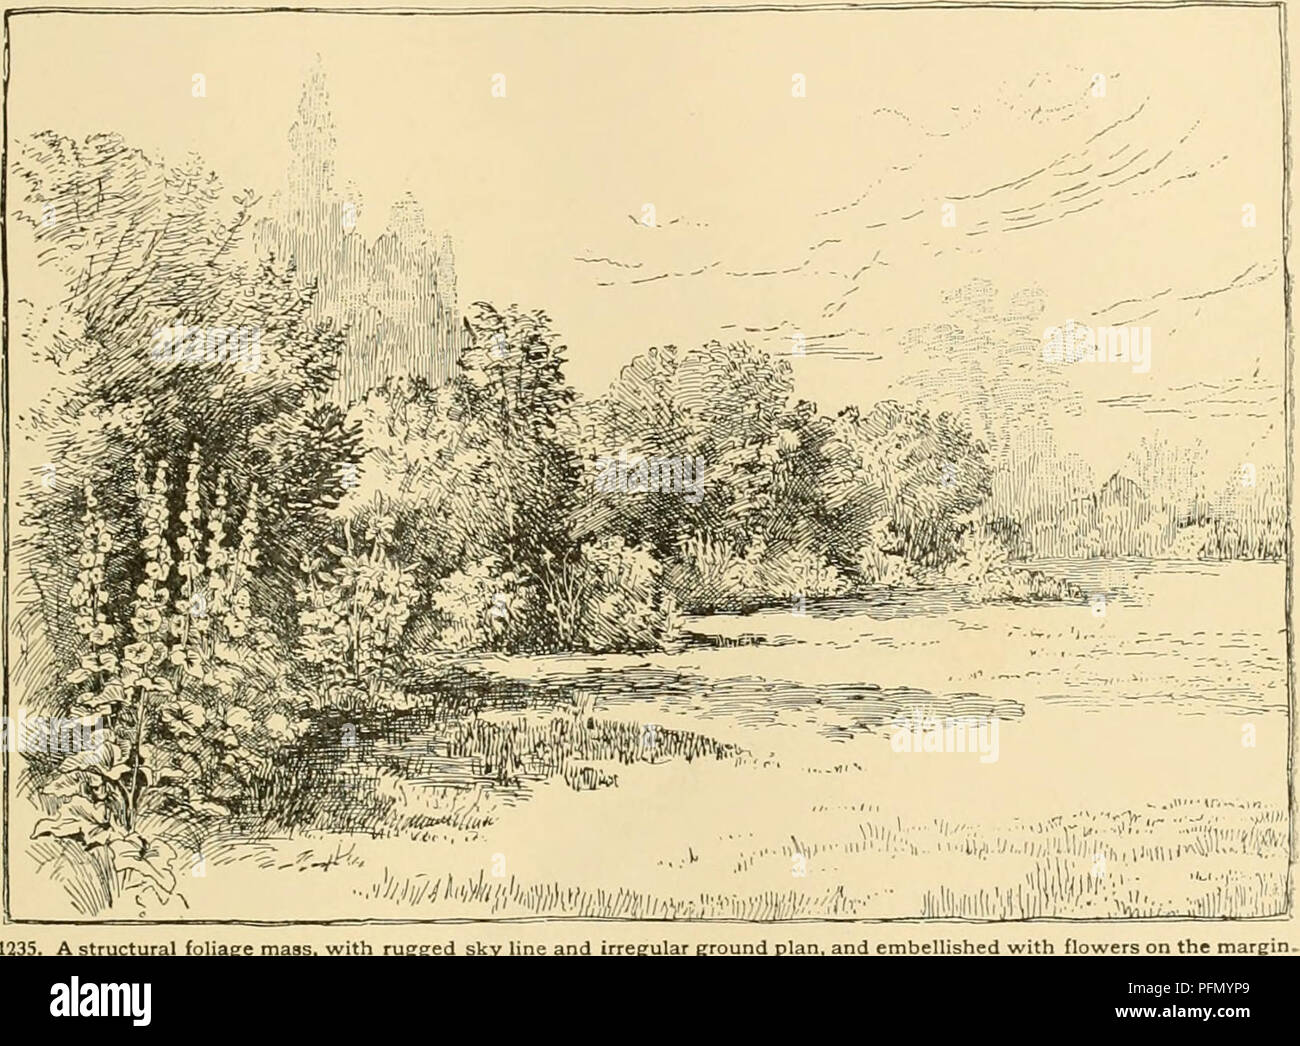 hight resolution of cyclopedia of american horticulture comprising suggestions for cultivation of horticultural plants descriptions of